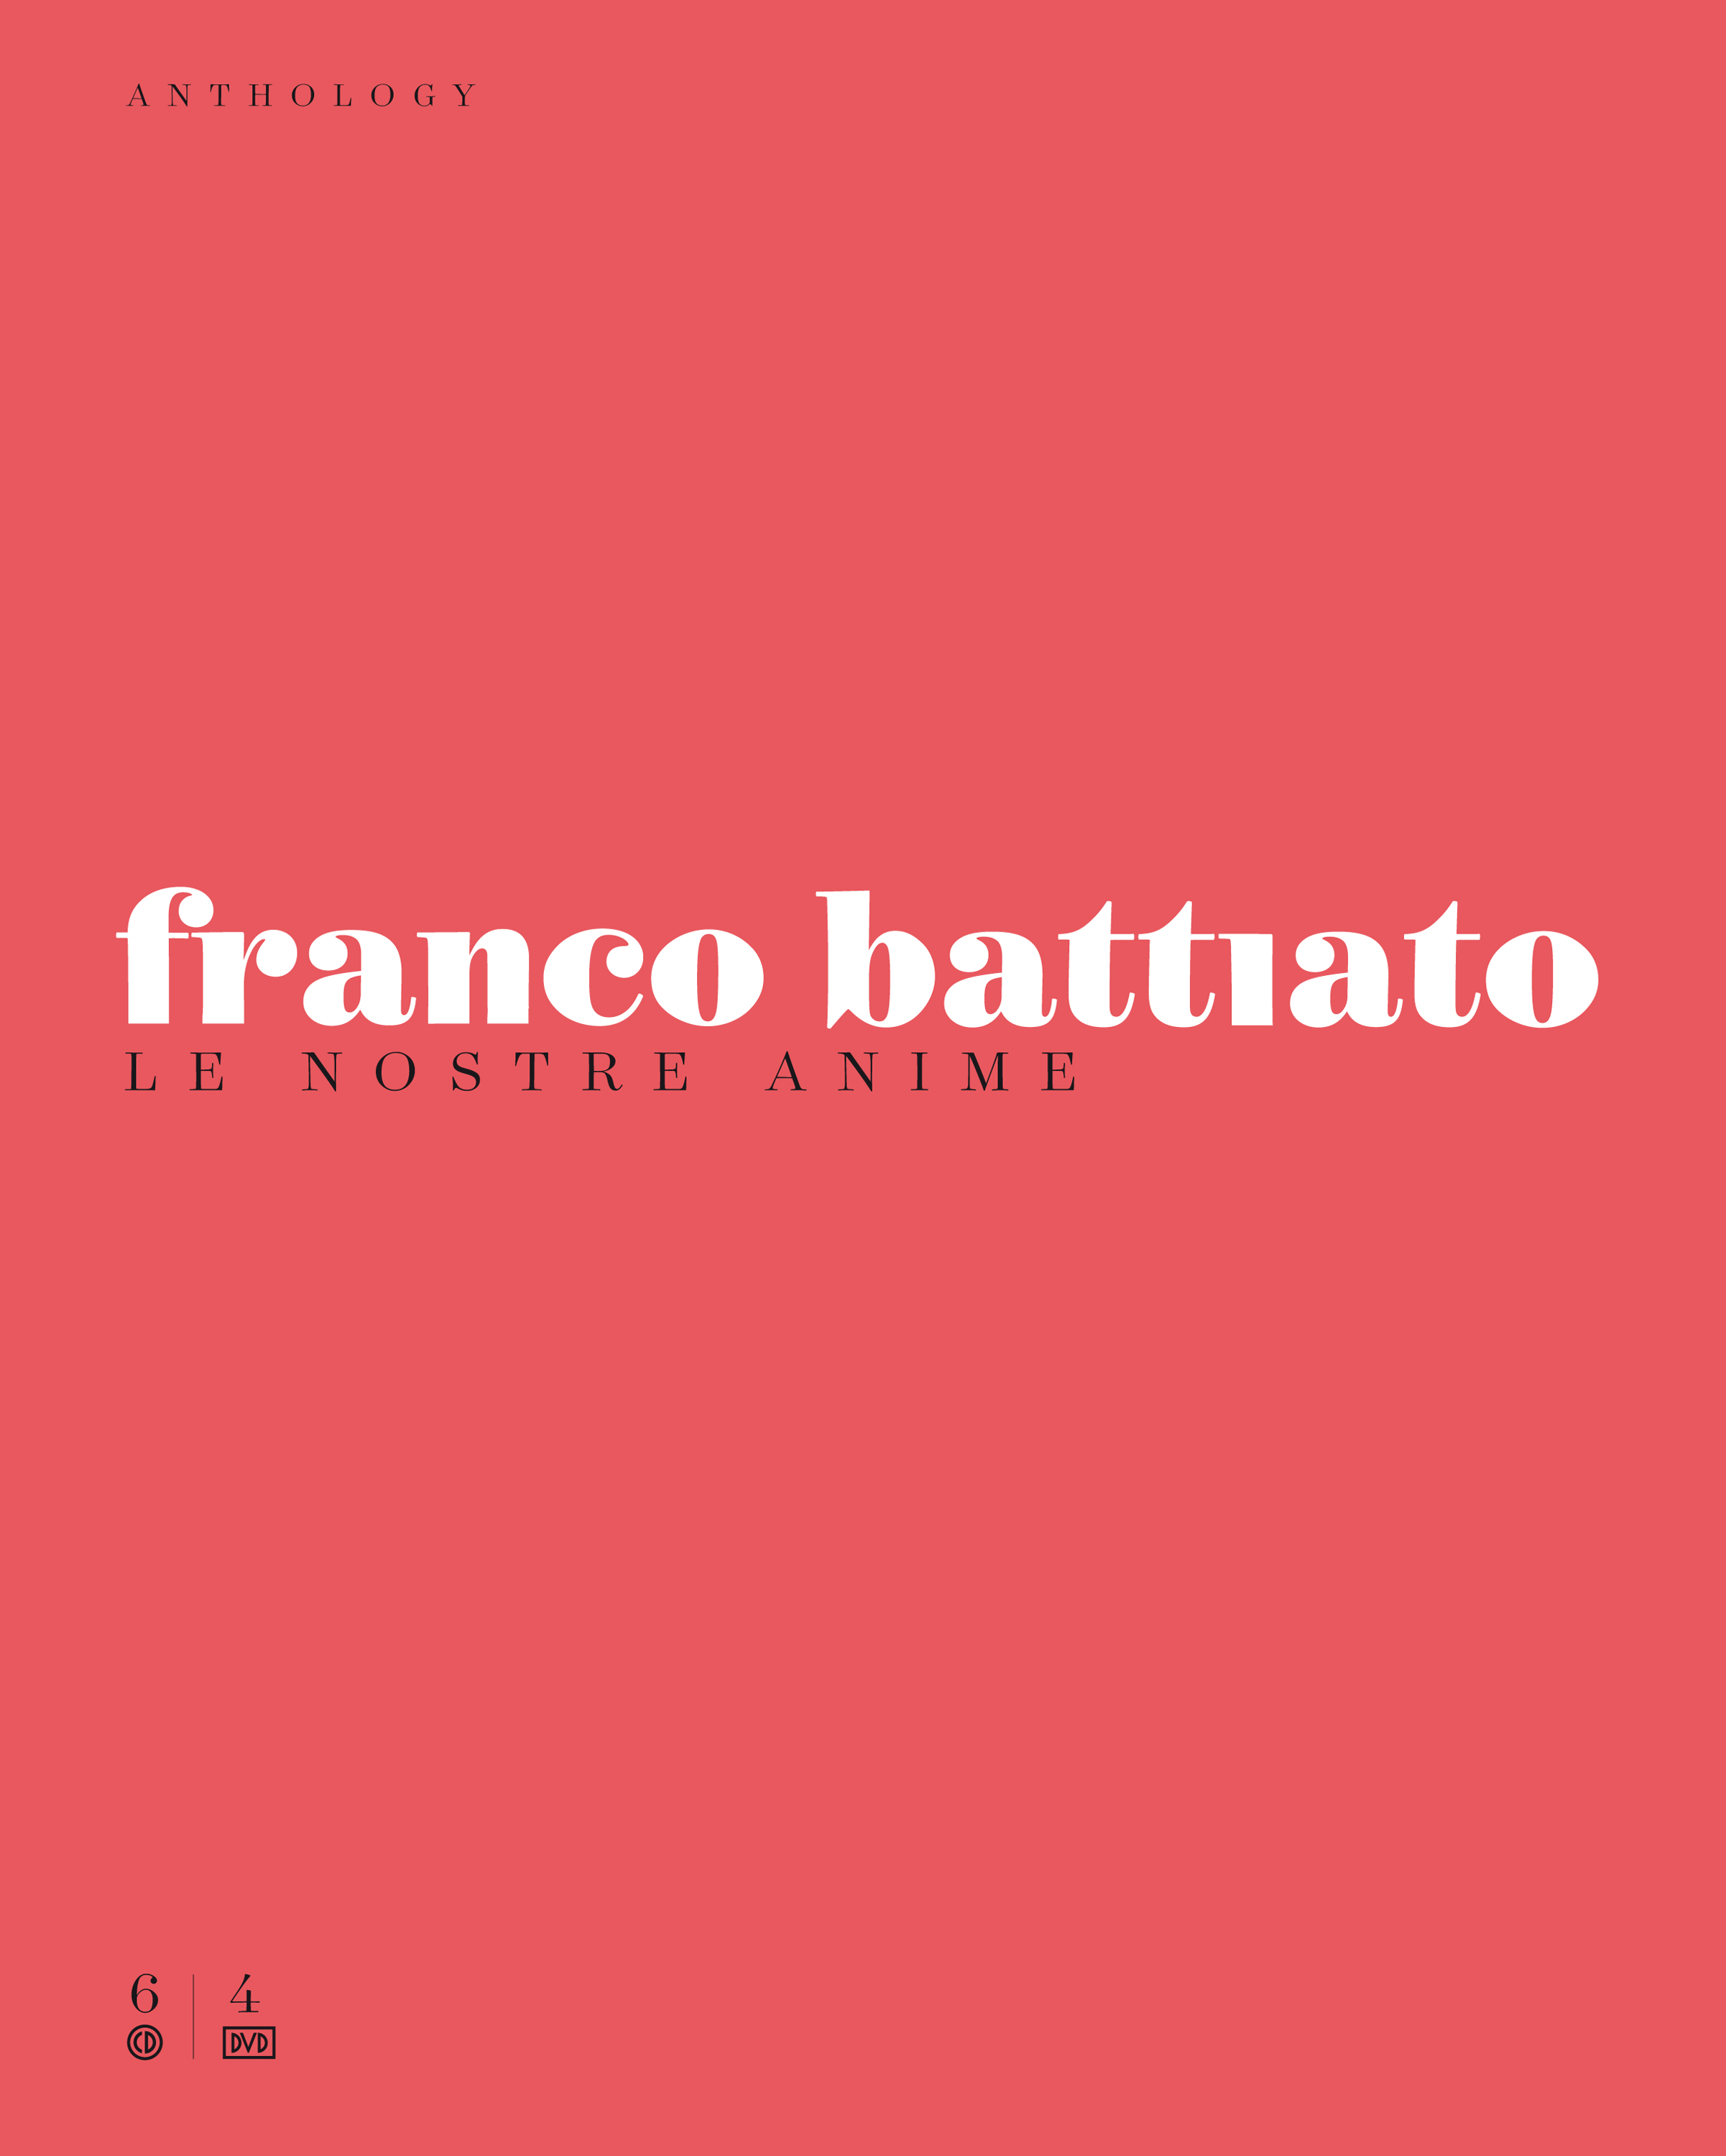 Le nostre anime. Anthology - Franco Battiato